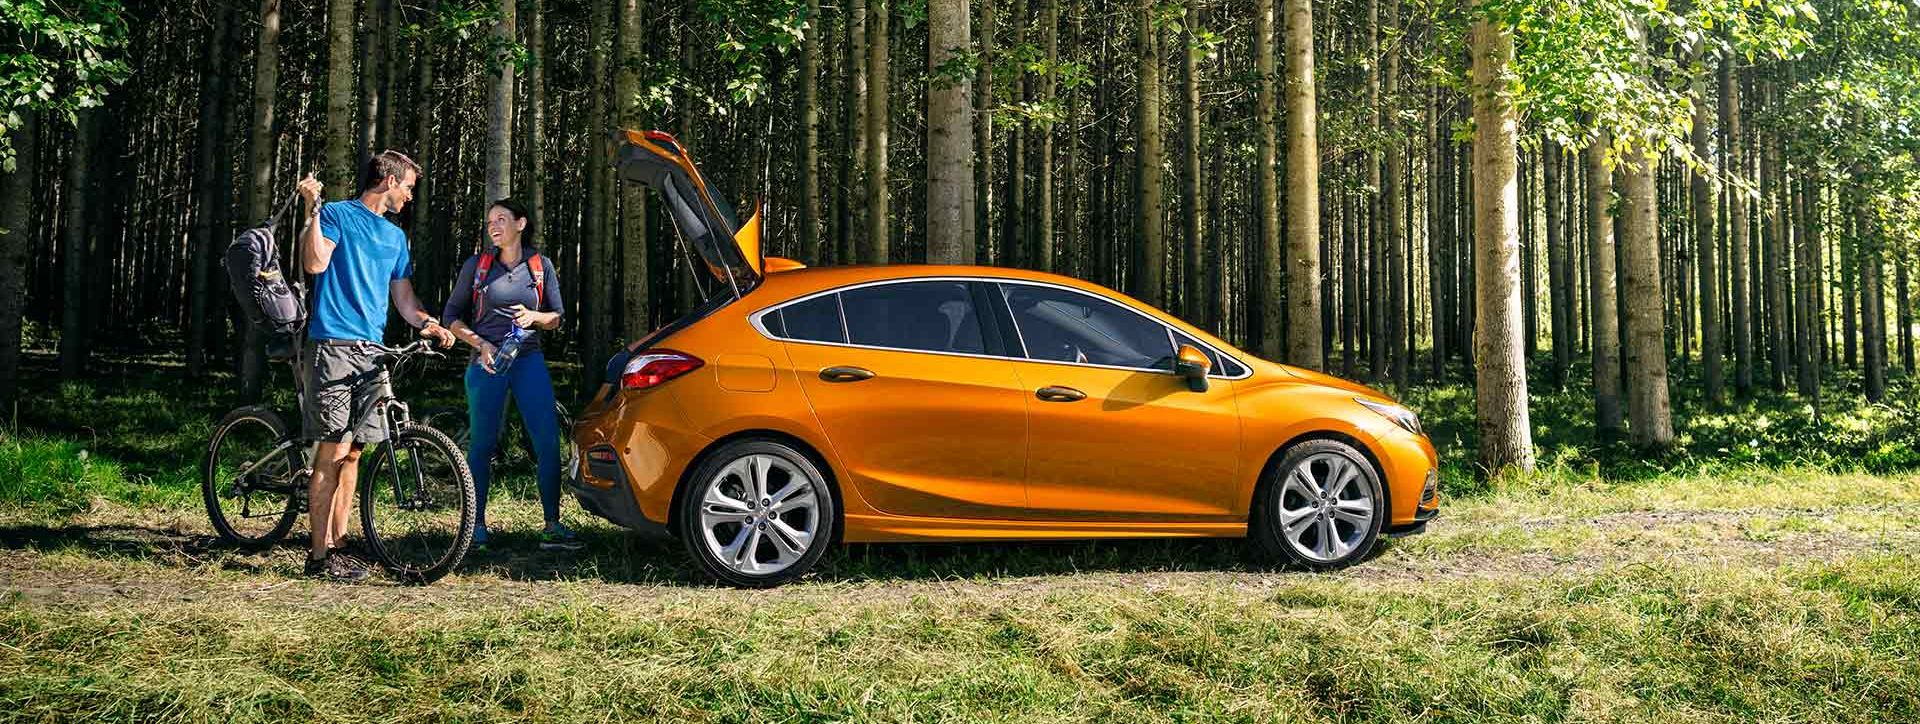 2017 chevy cruze for sale in highland in christenson chevrolet. Black Bedroom Furniture Sets. Home Design Ideas